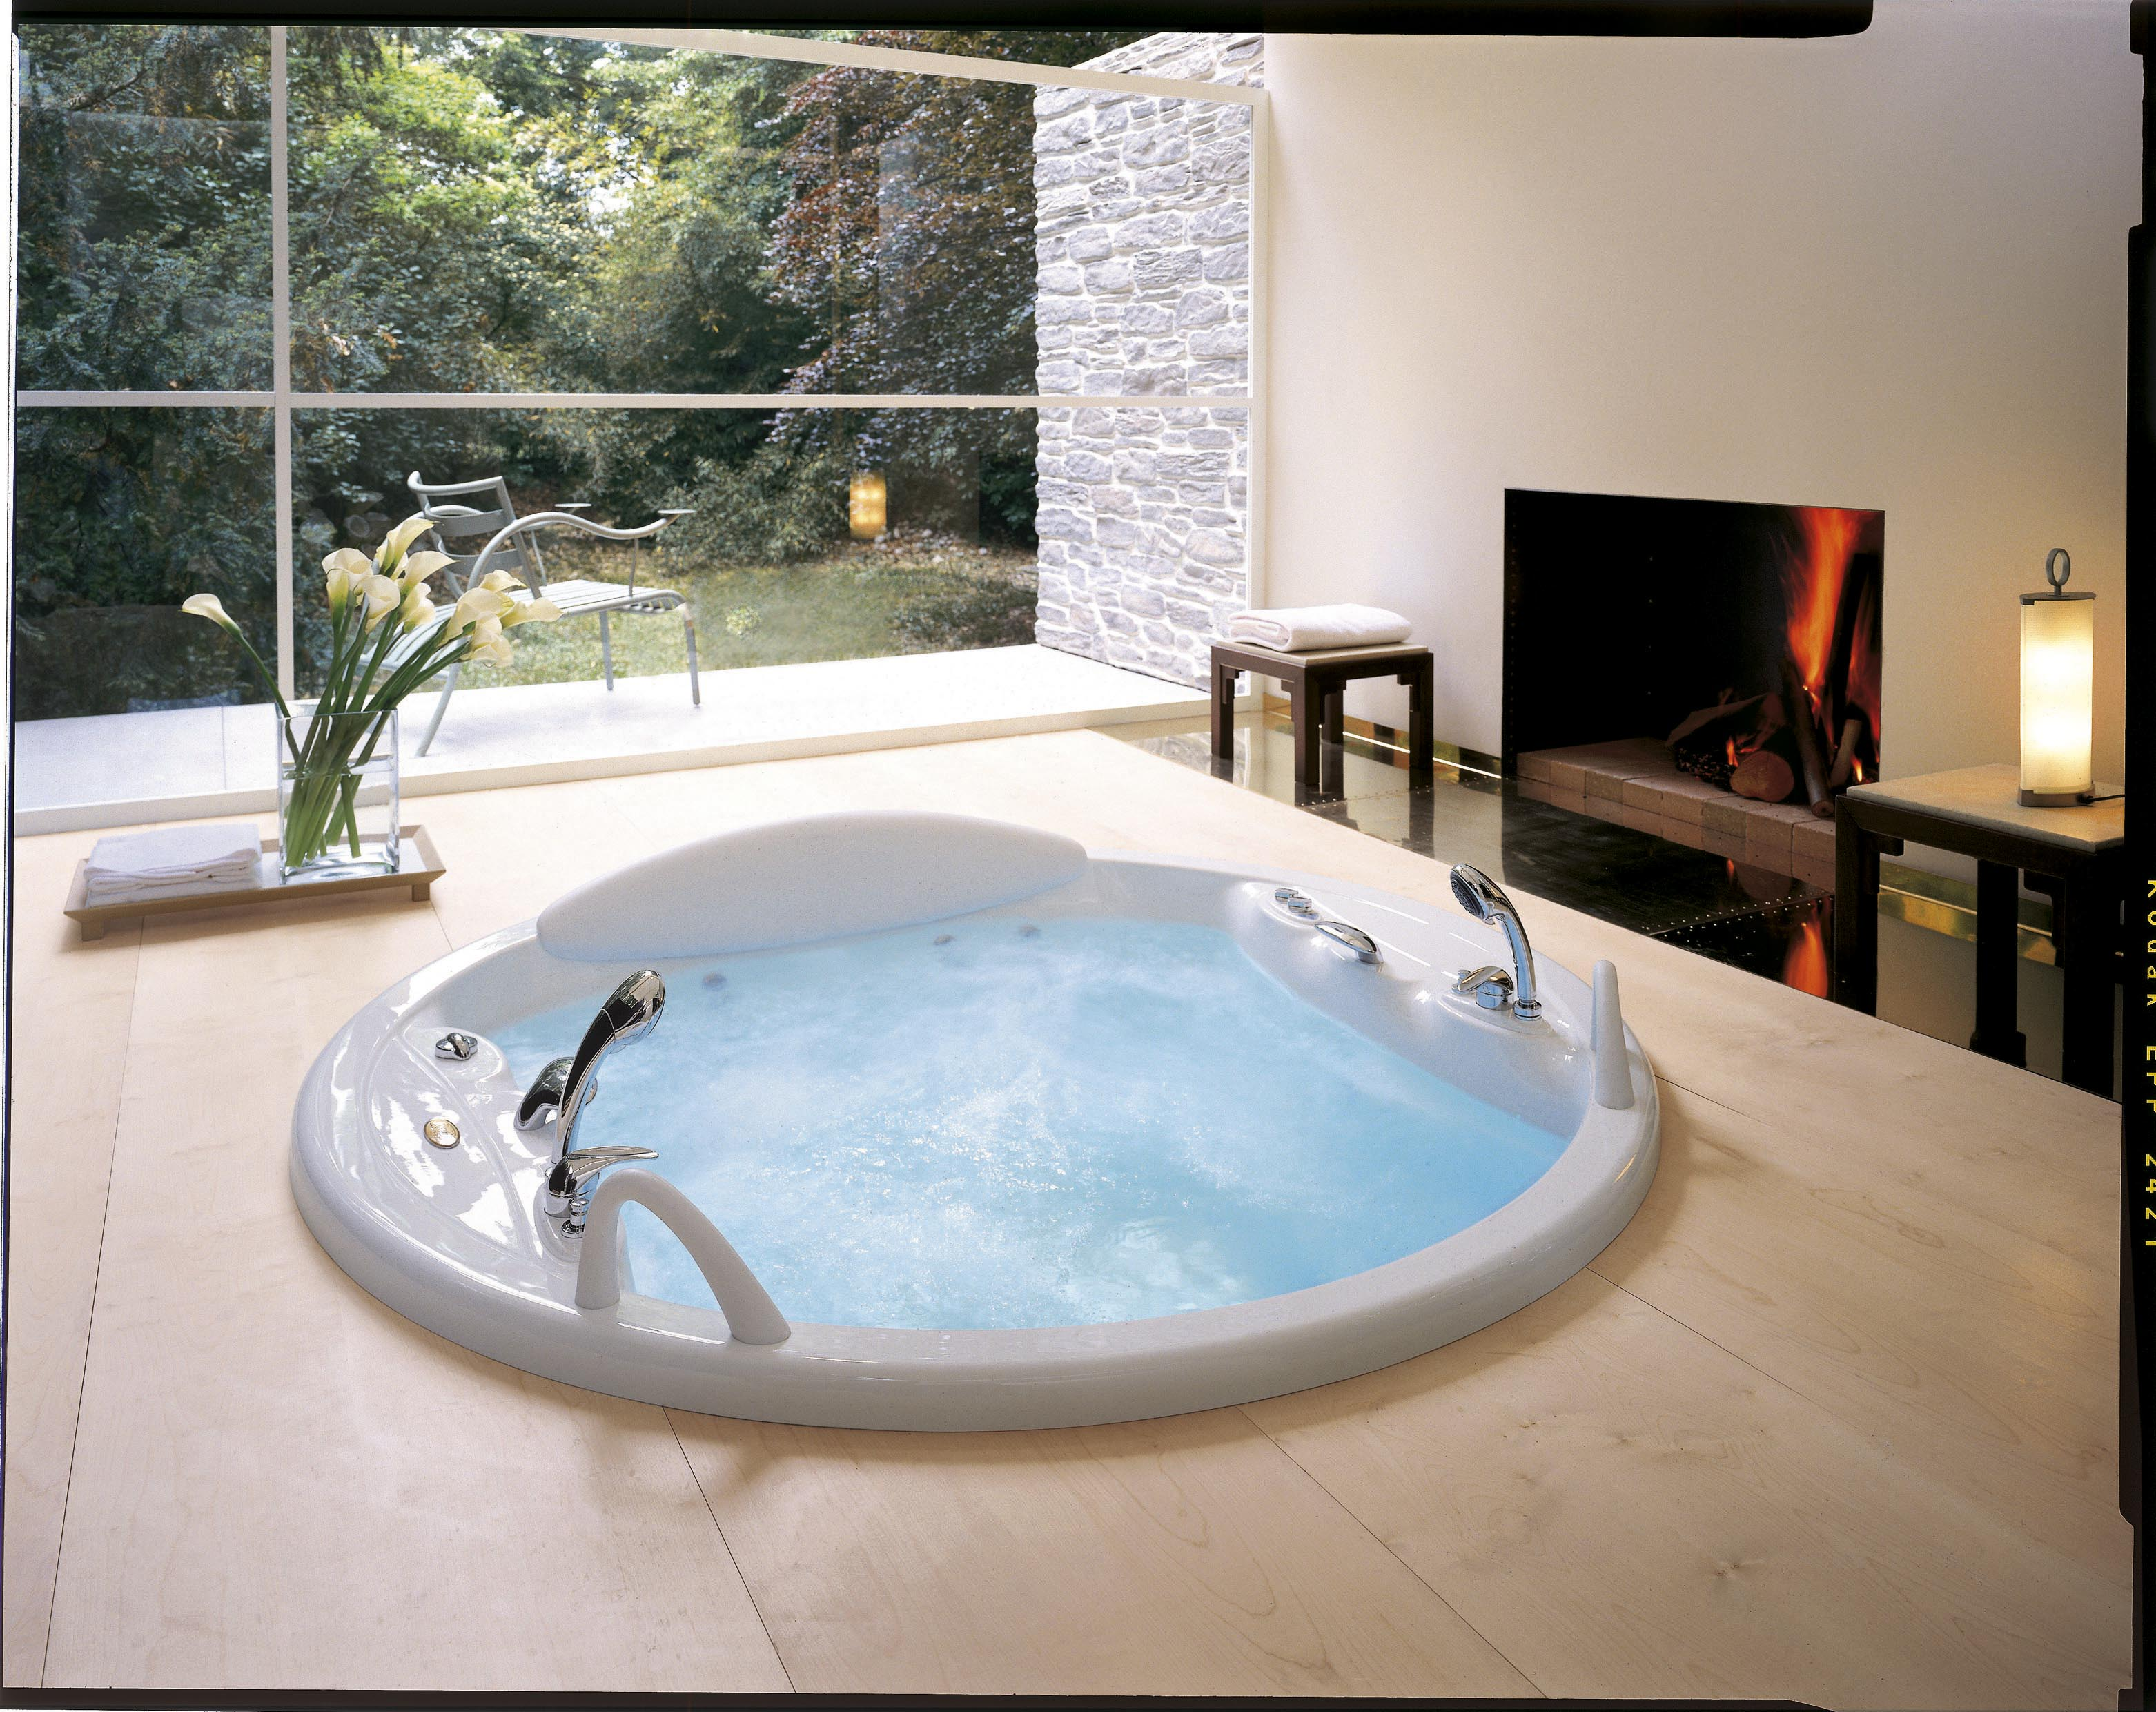 Badezimmer Mit Whirlpool Jacuzzi And Importance Of Jets | Hotspring Spas